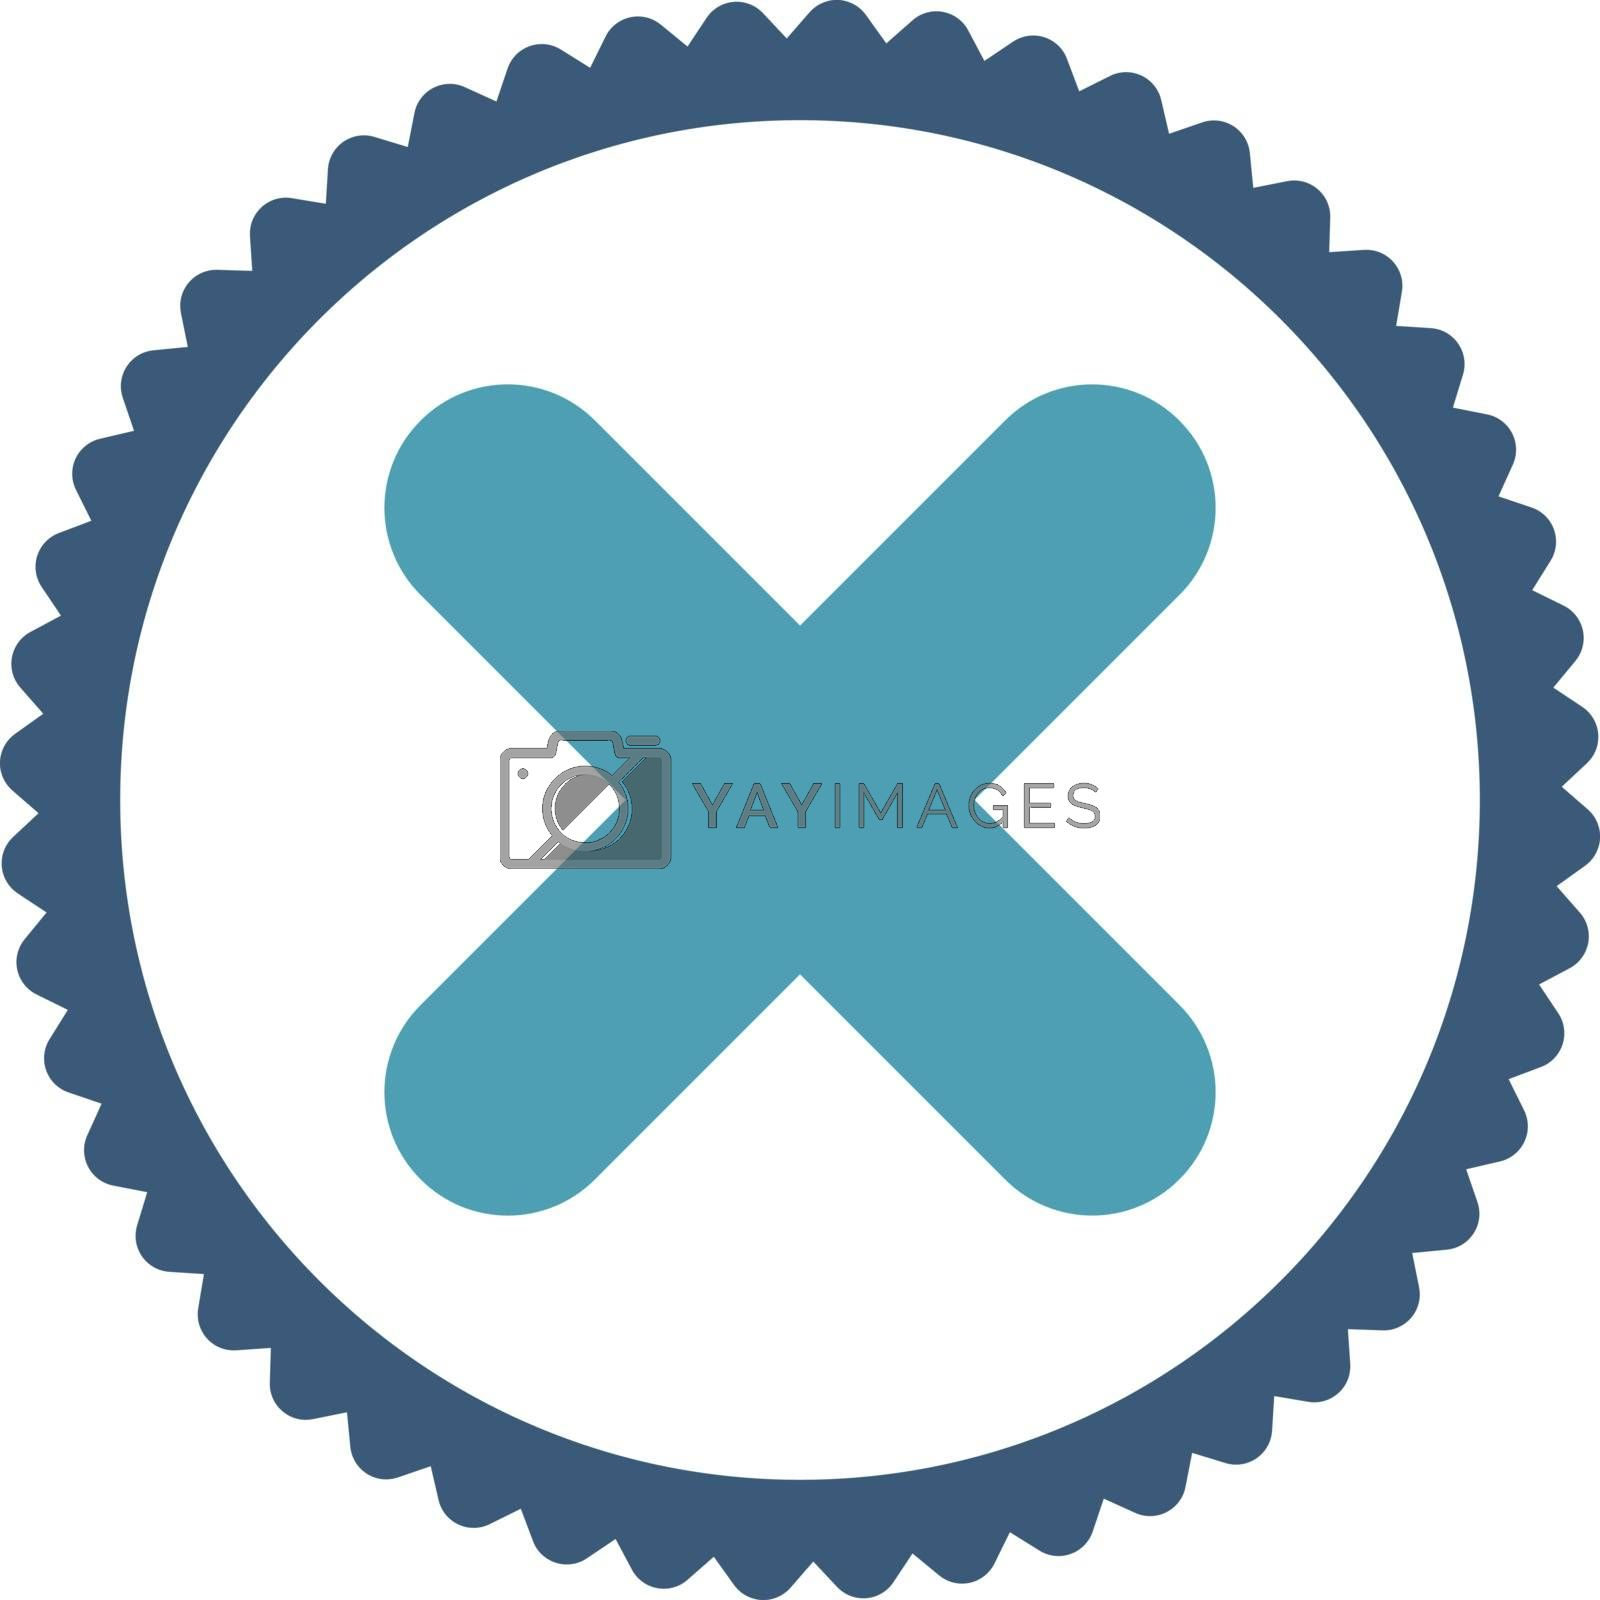 Cancel flat cyan and blue colors round stamp icon by Aha-Soft